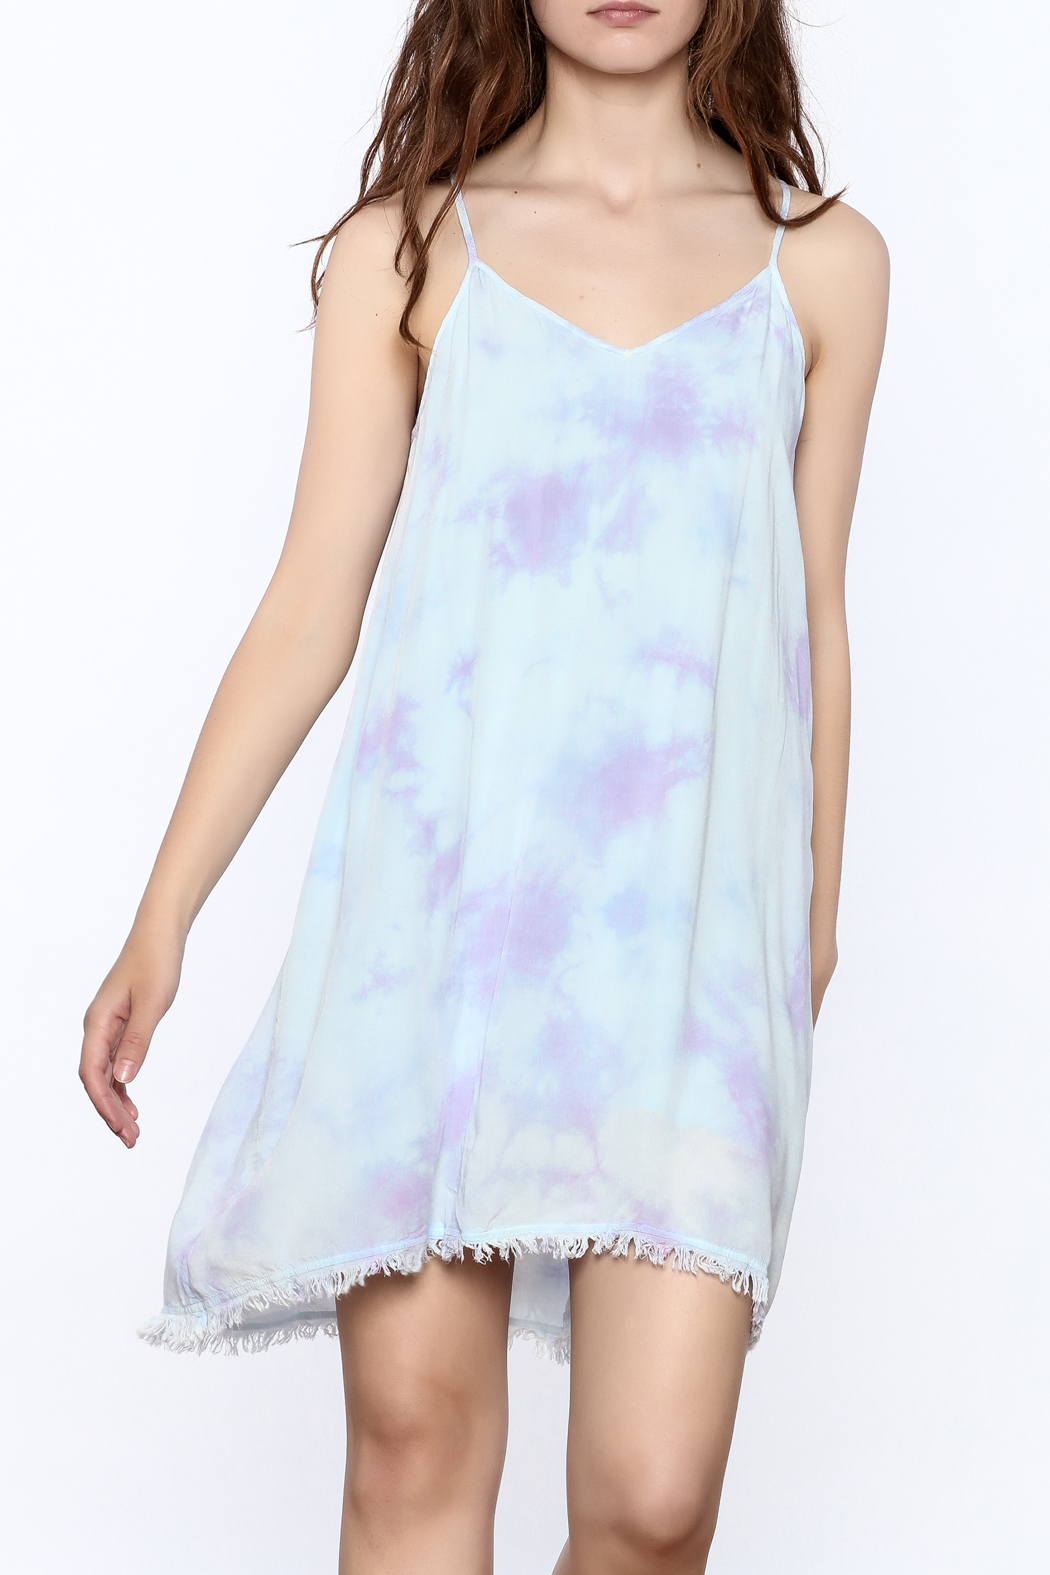 Mustard Seed Lilac Tie Dye Dress - Main Image